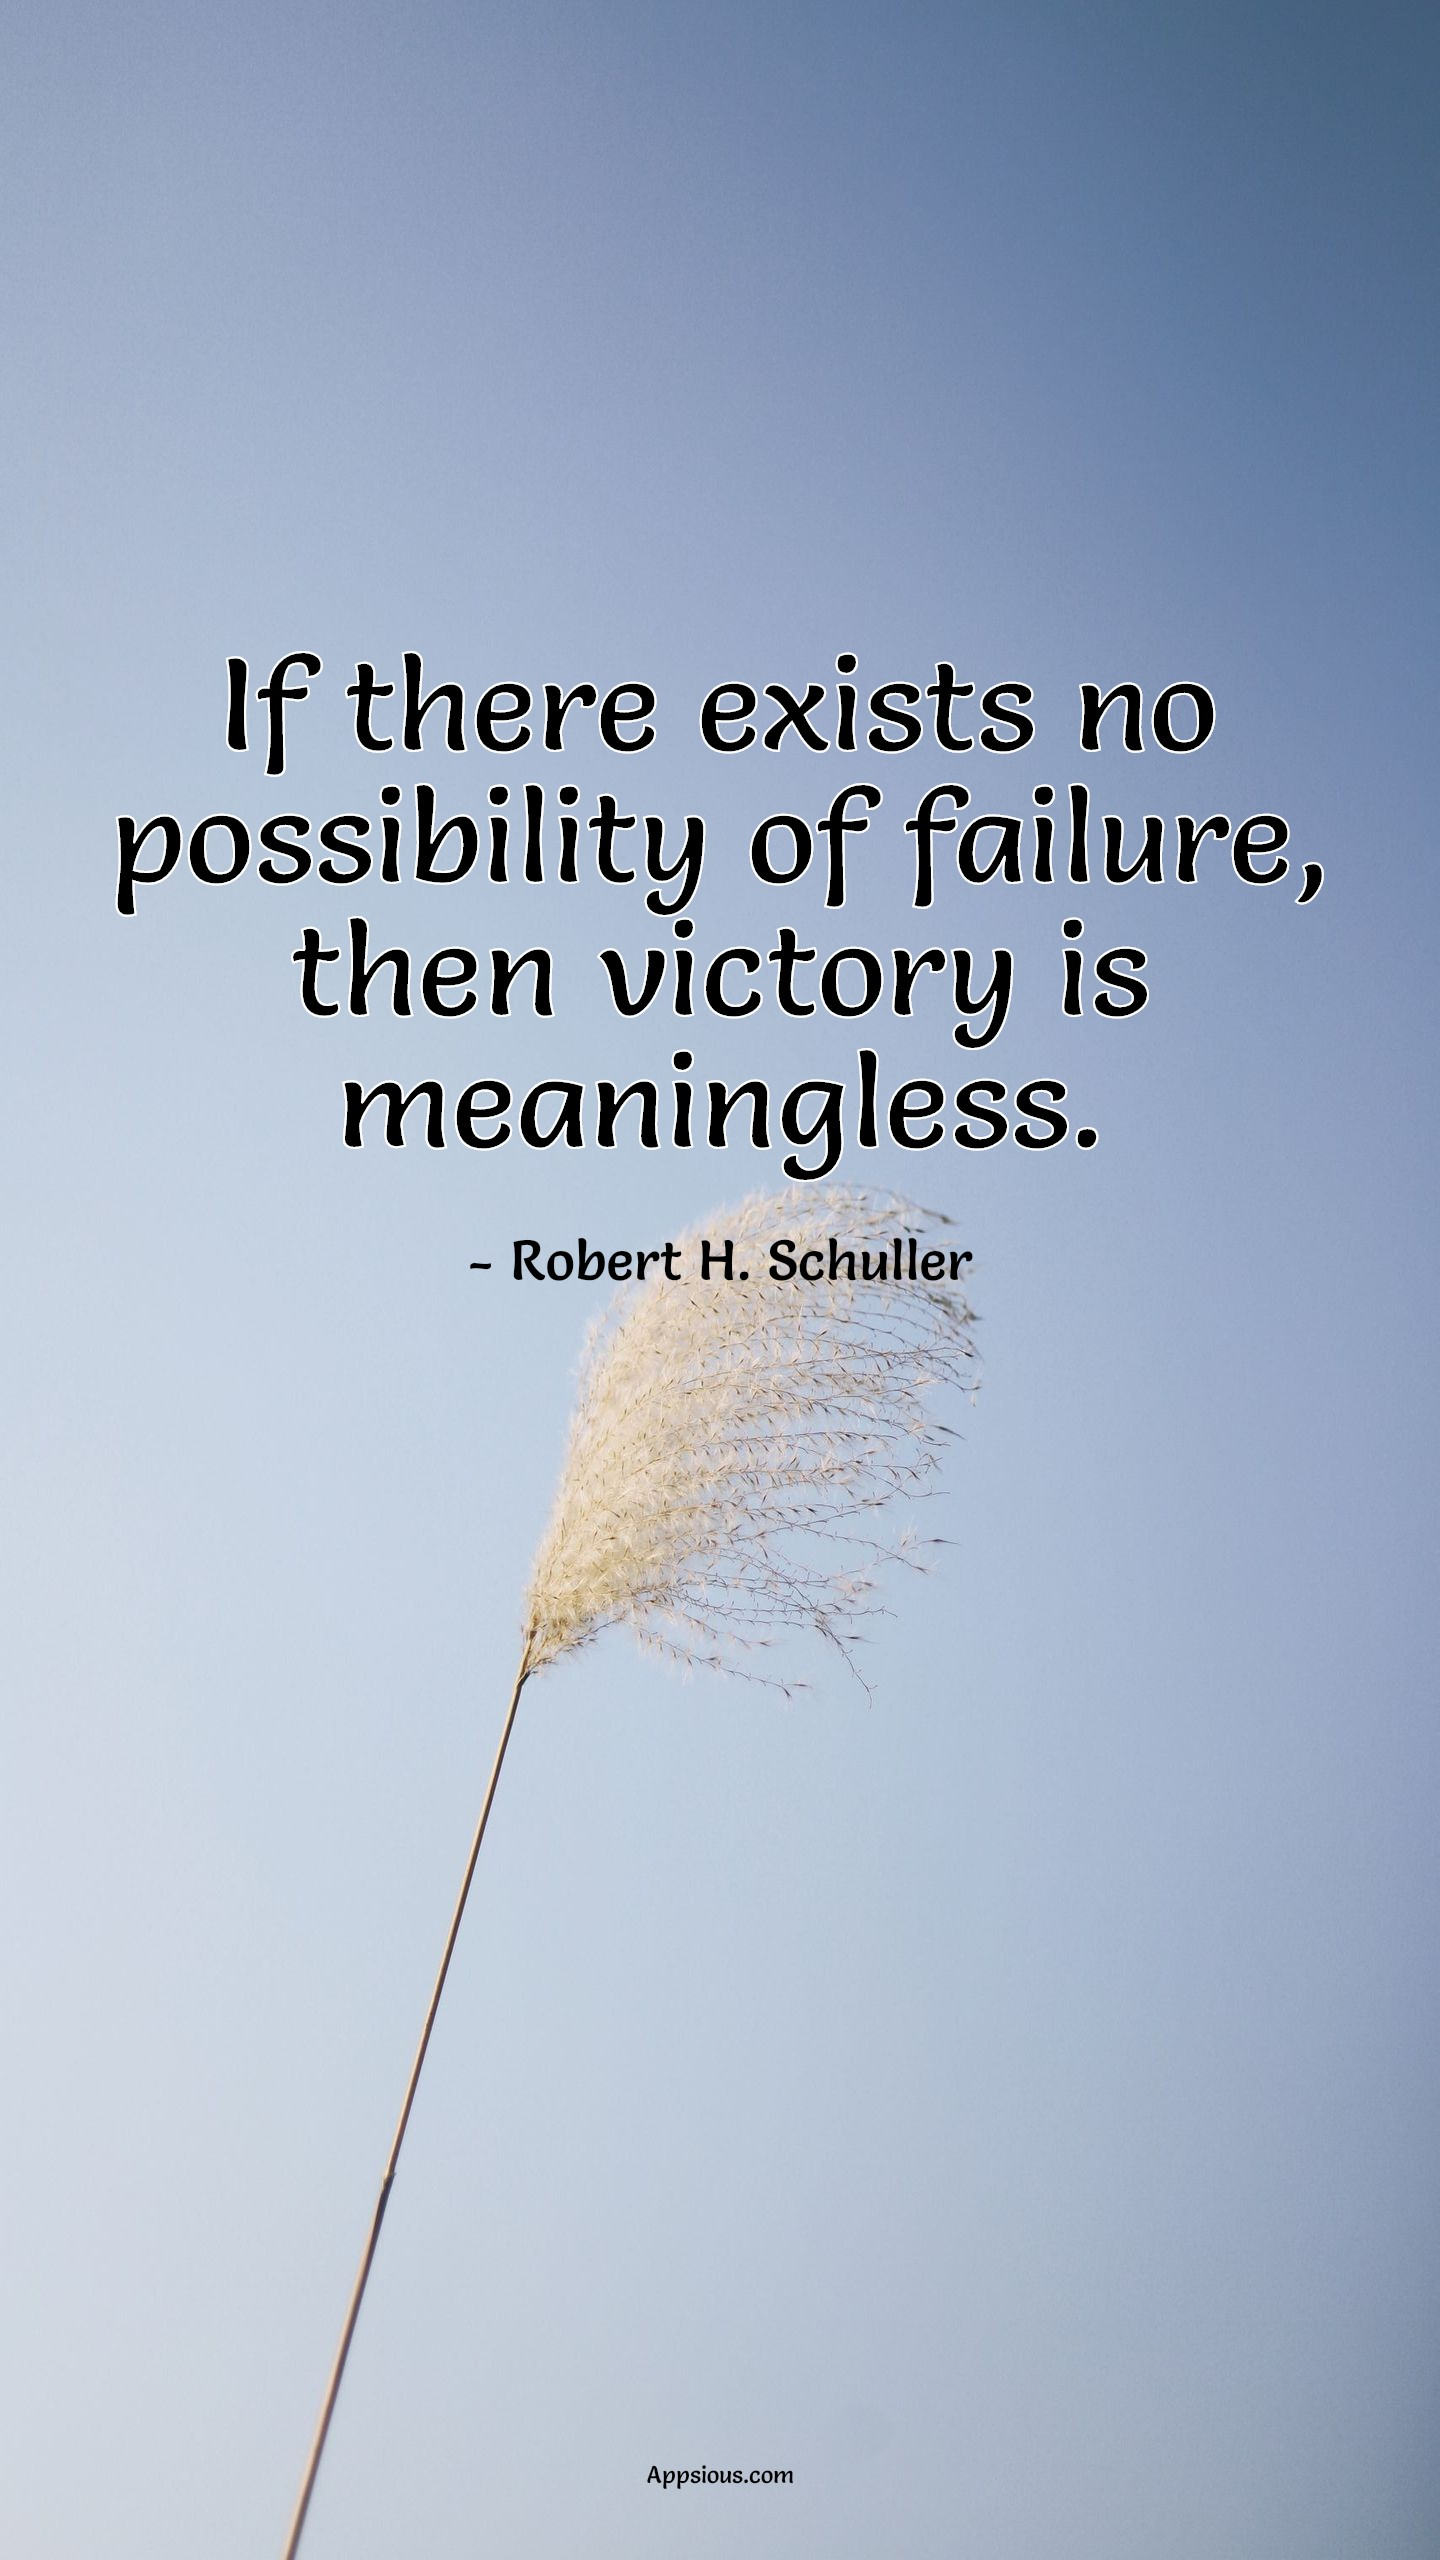 If there exists no possibility of failure, then victory is meaningless.